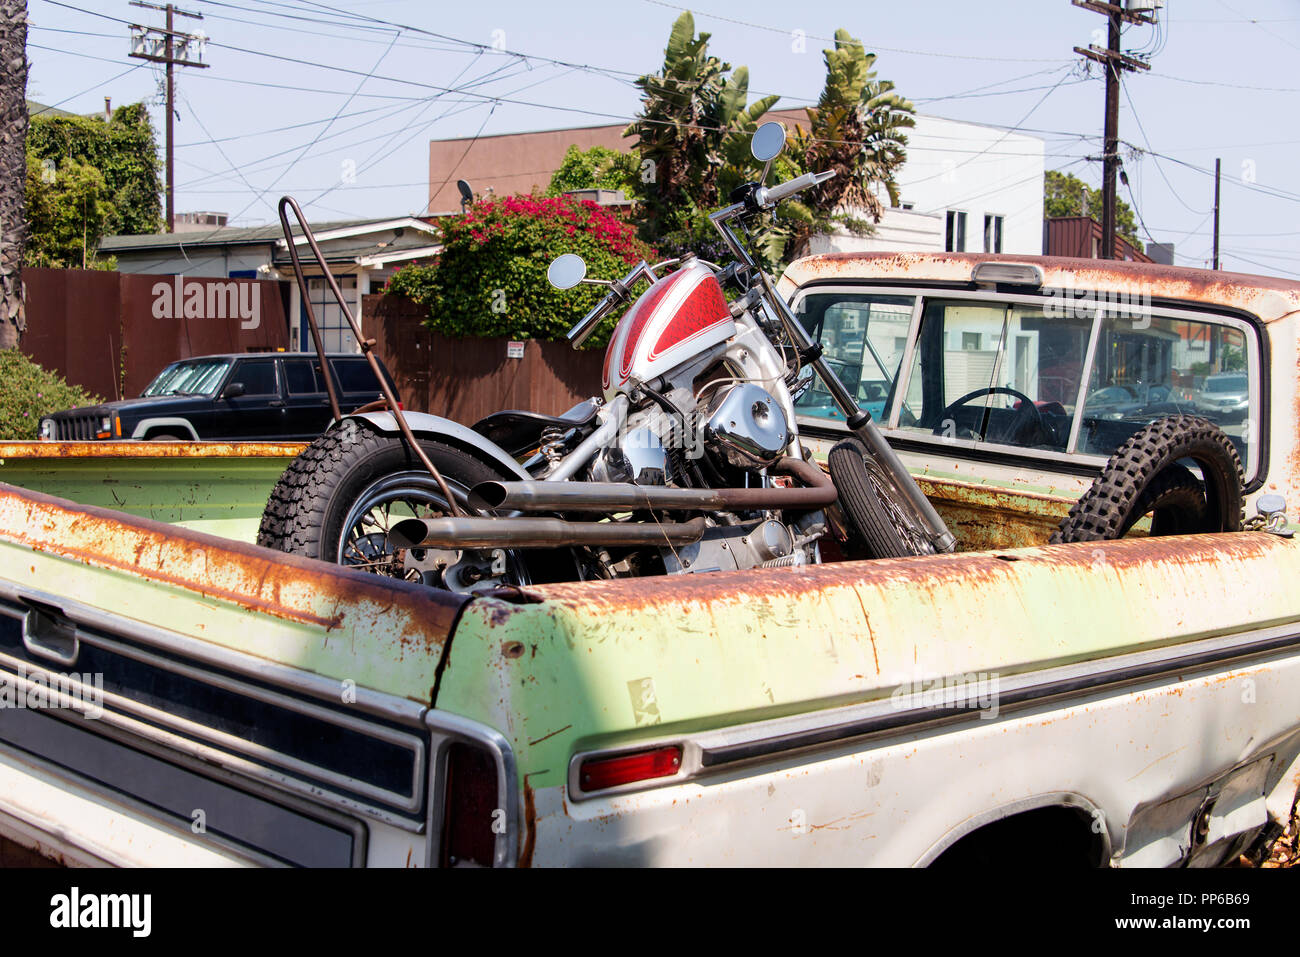 A view of a motorcycle in a vintage pick up truck trunk - Stock Image